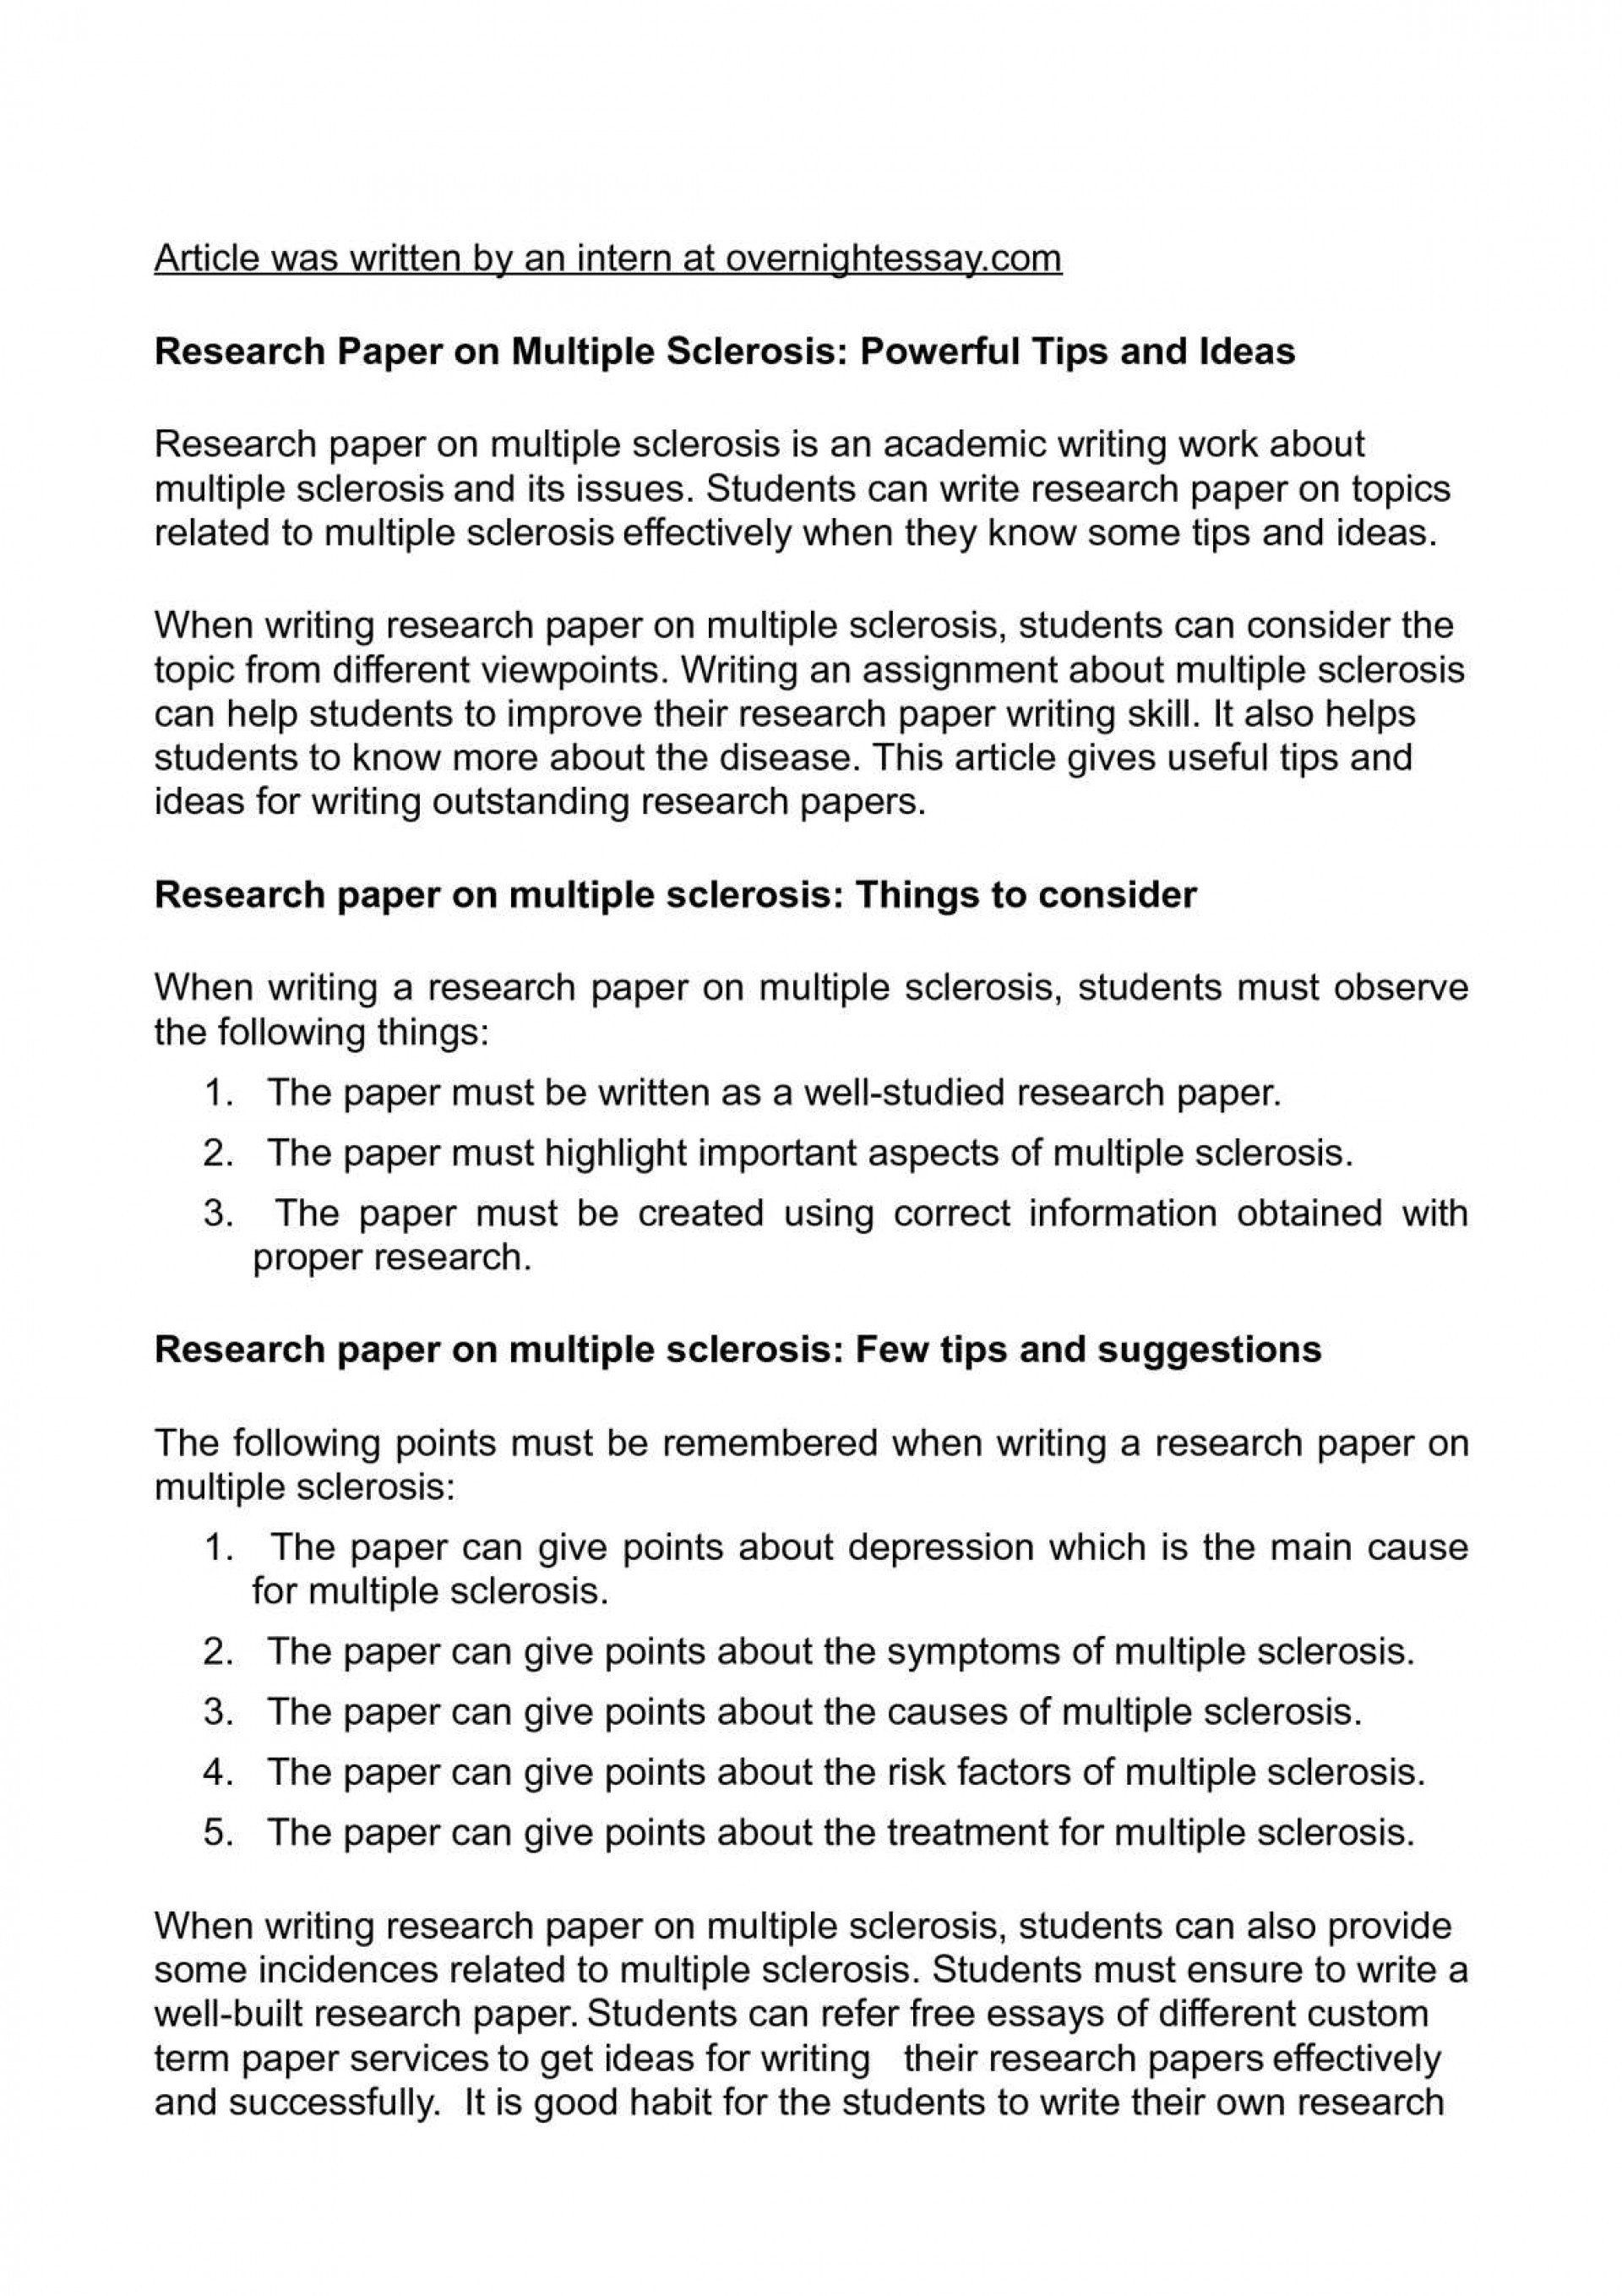 004 Research Paper Ideas To Write On Dreaded A Good 1920